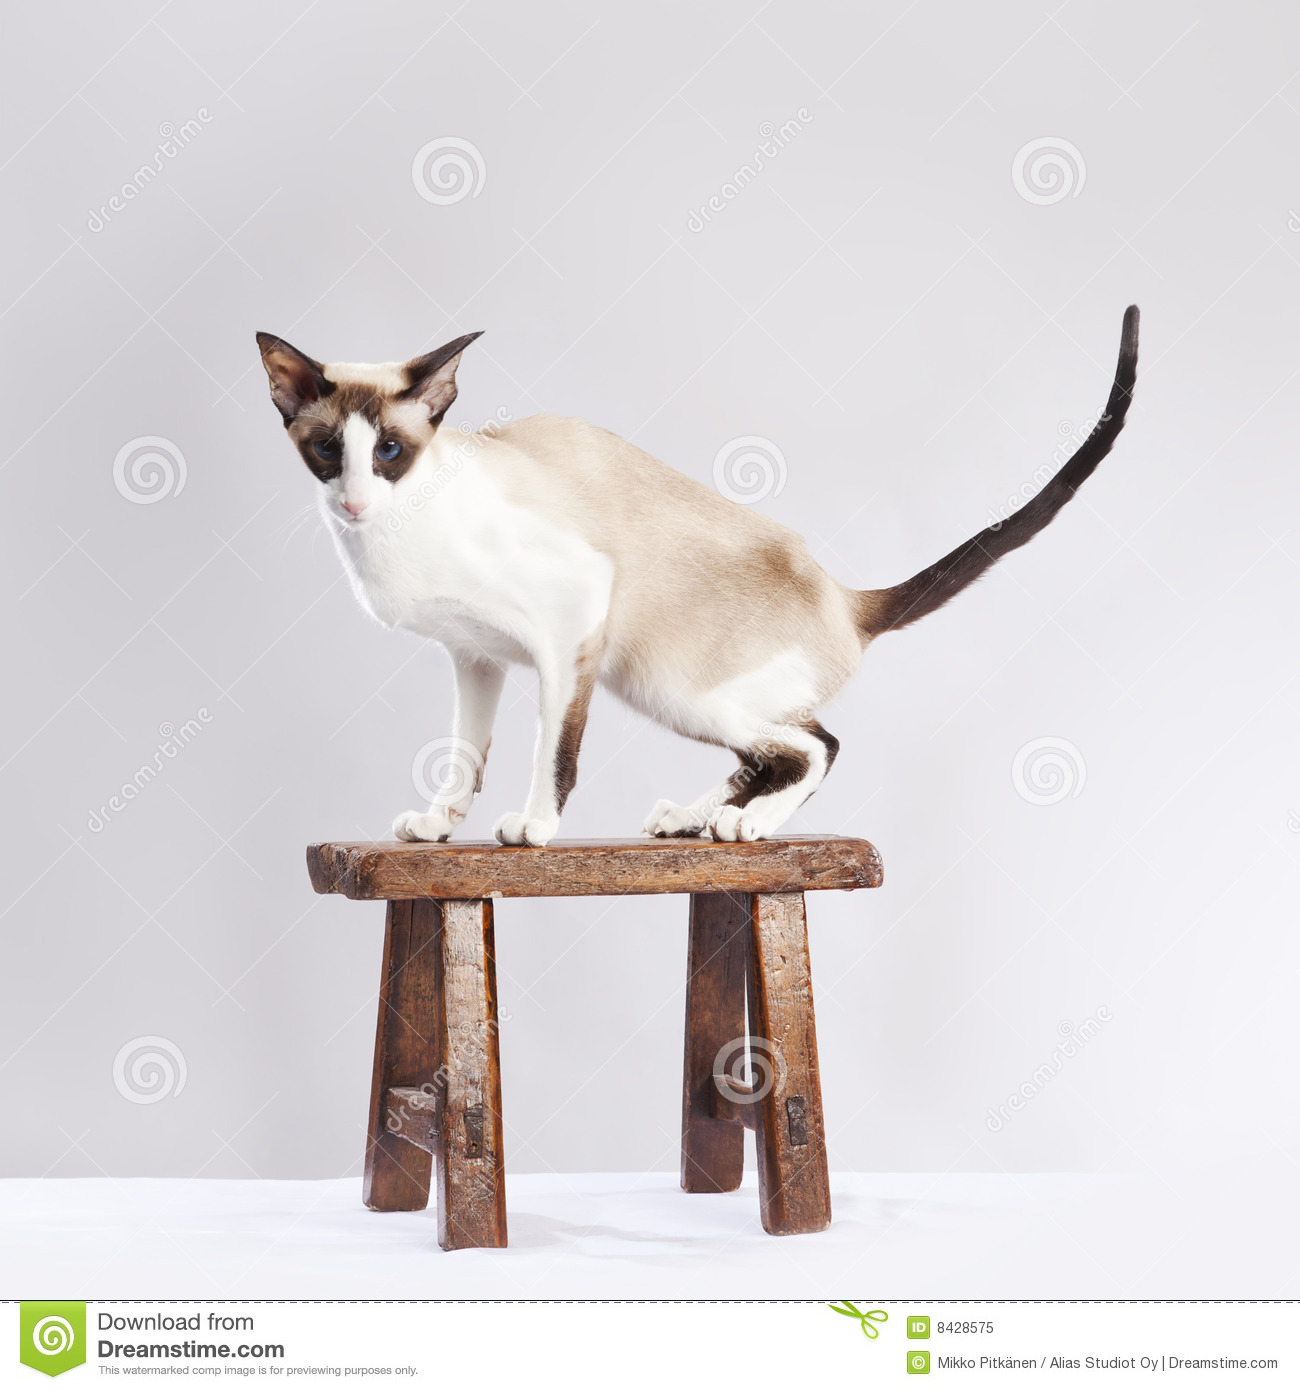 Cat on the small chair